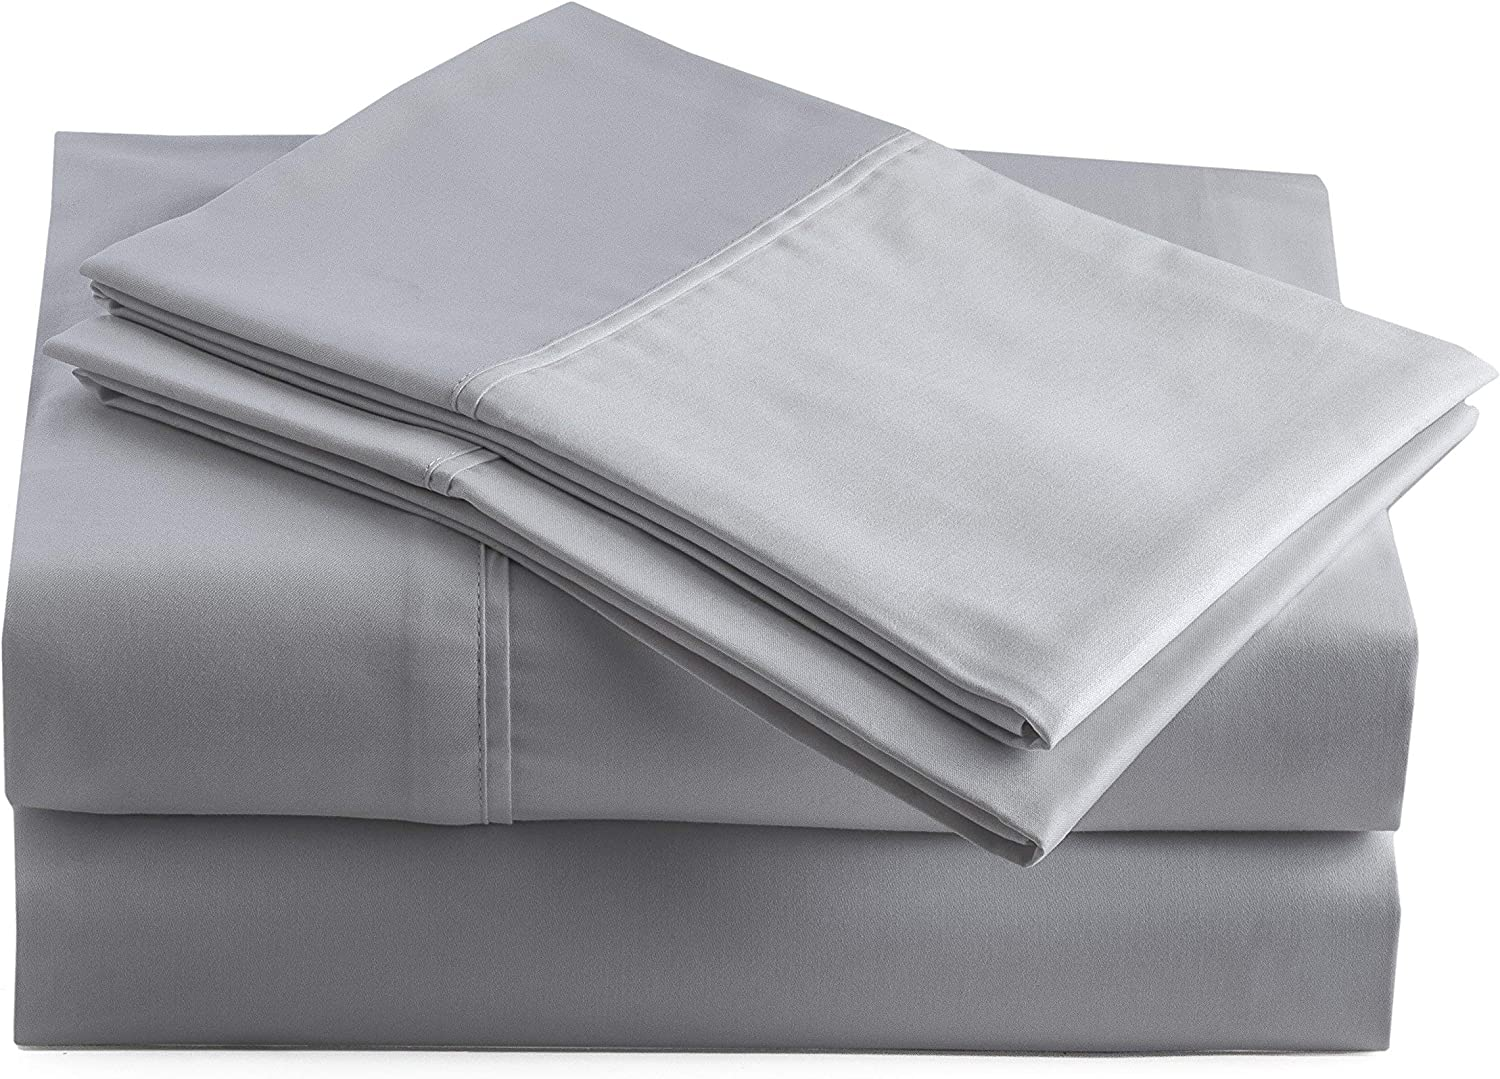 COTTONWALAS Soft Solid Pattern Egyptian Cotton 600 Thread Count 4 Piece Sheet Set Fits Upto 14-18'' Deep Pocket (Queen, Silver Grey)